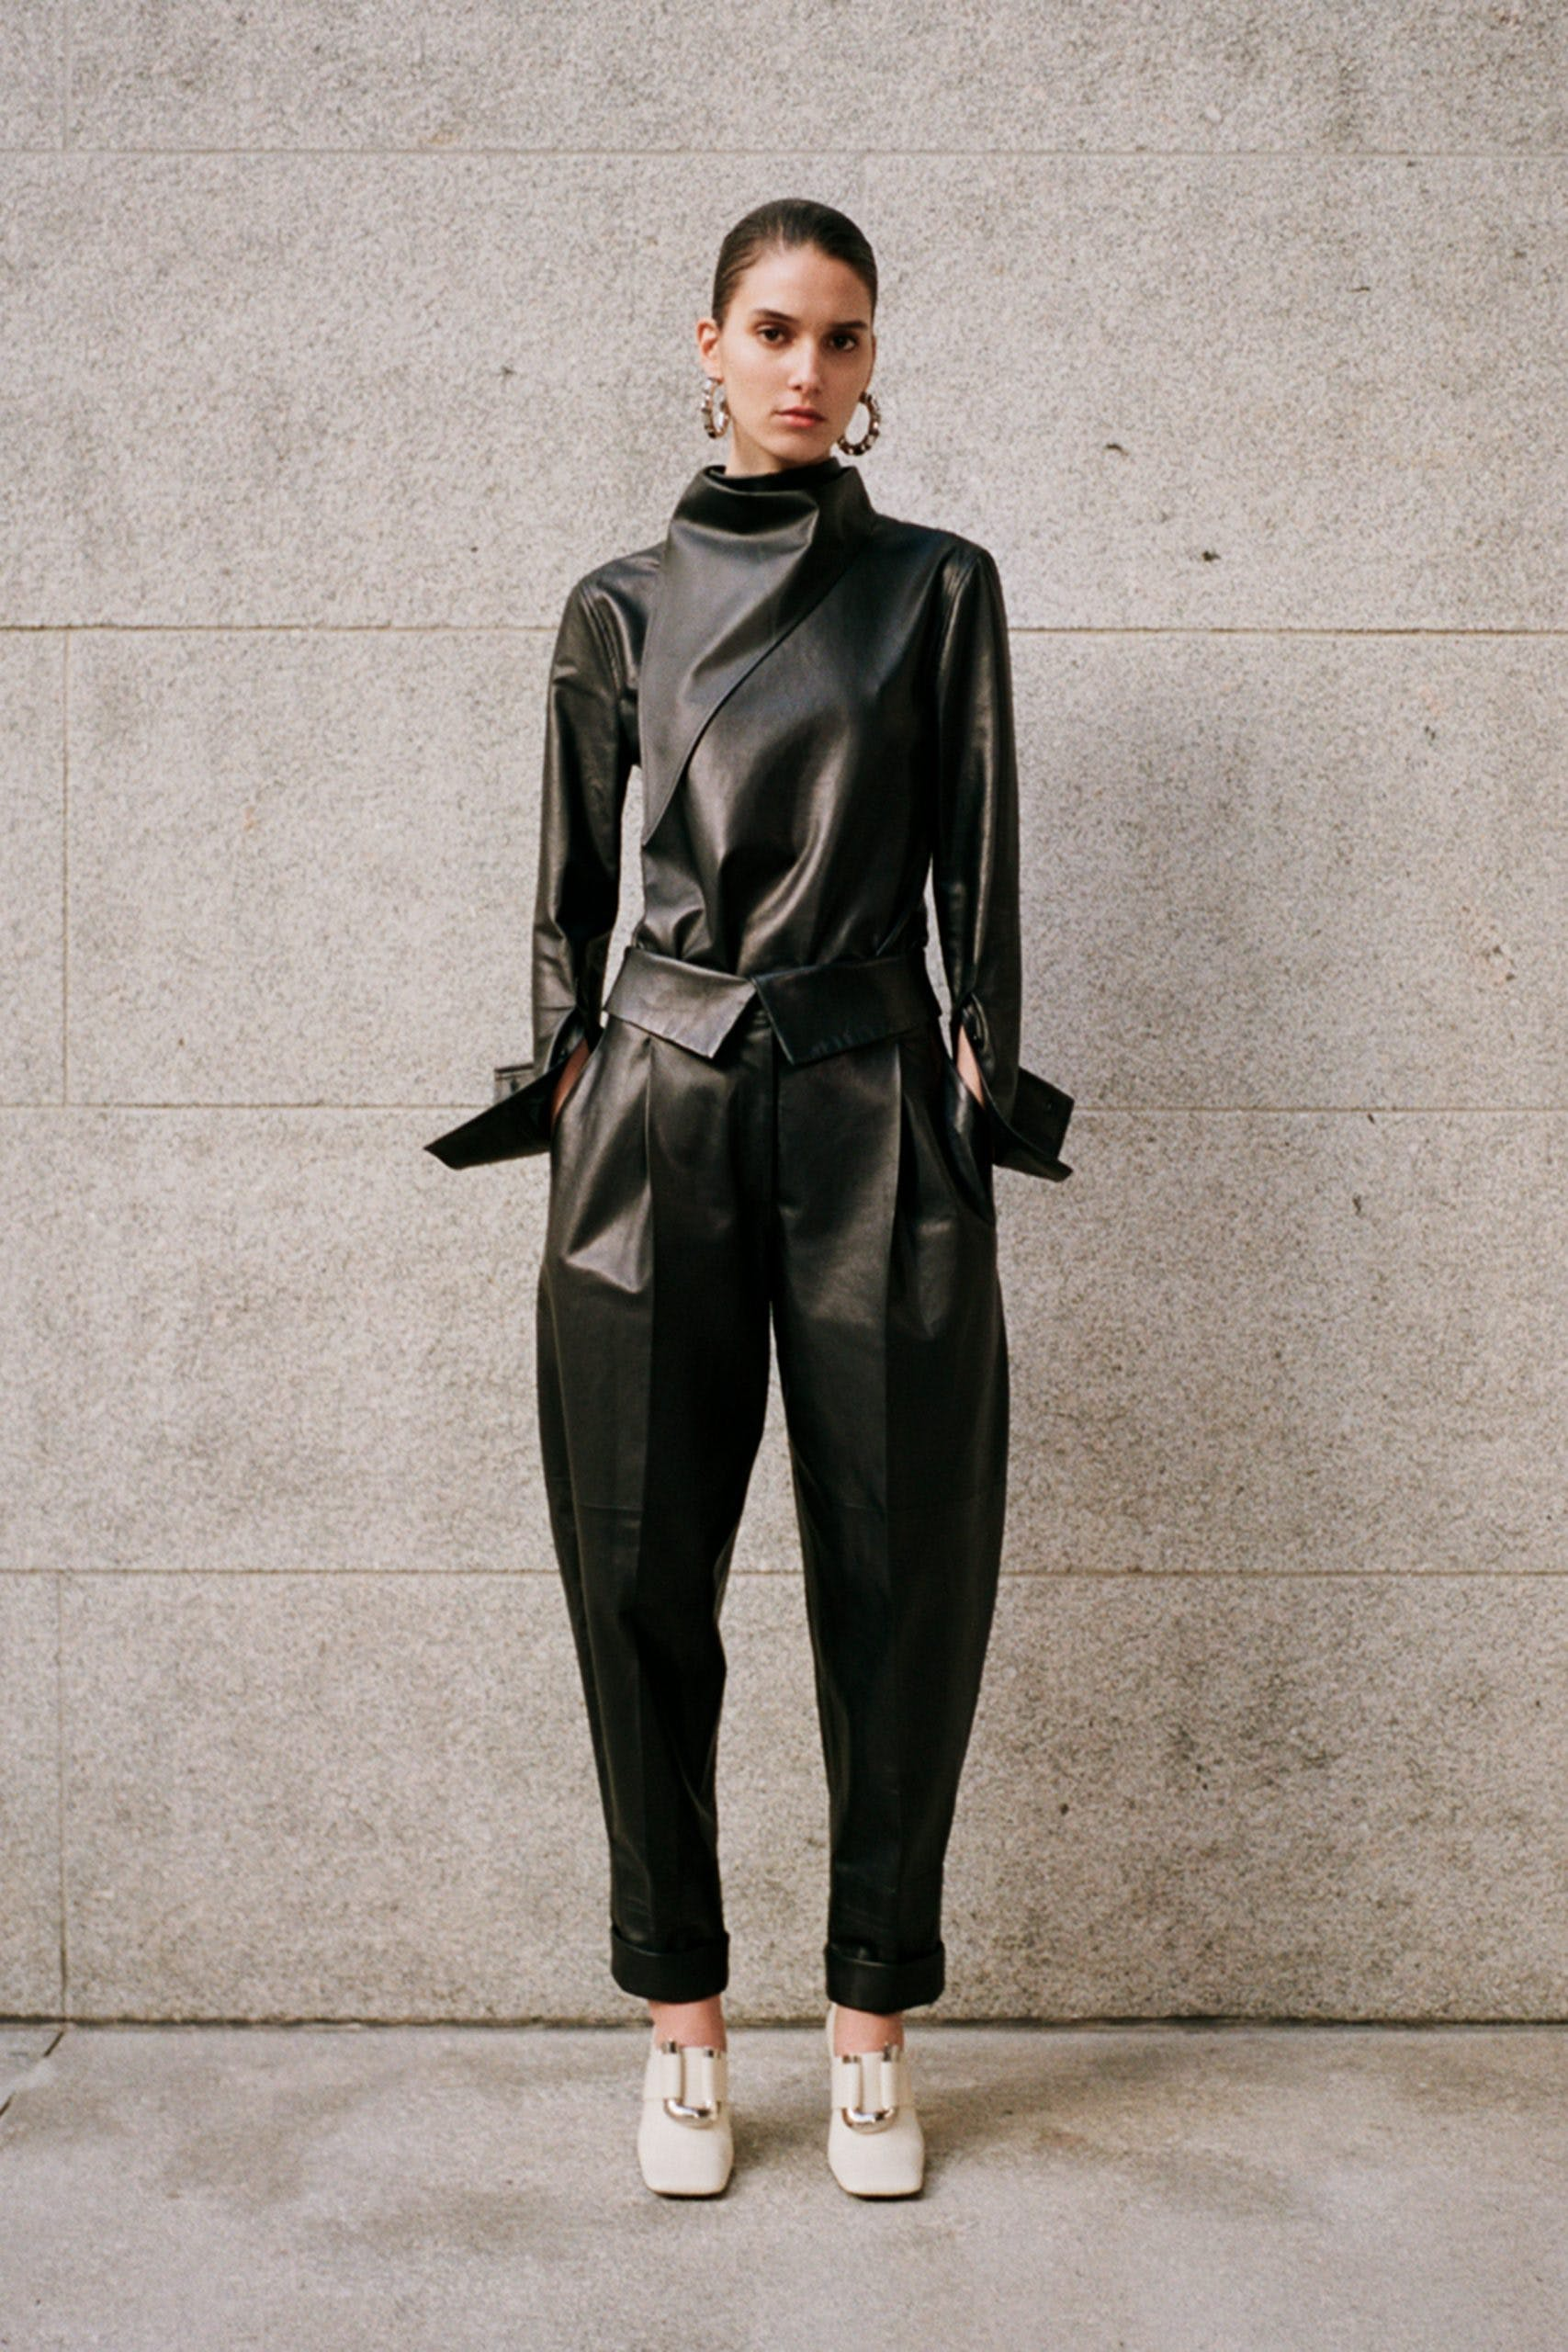 proenza schouler black leather cowl neck top black leather fold over trousers white square toe pumps